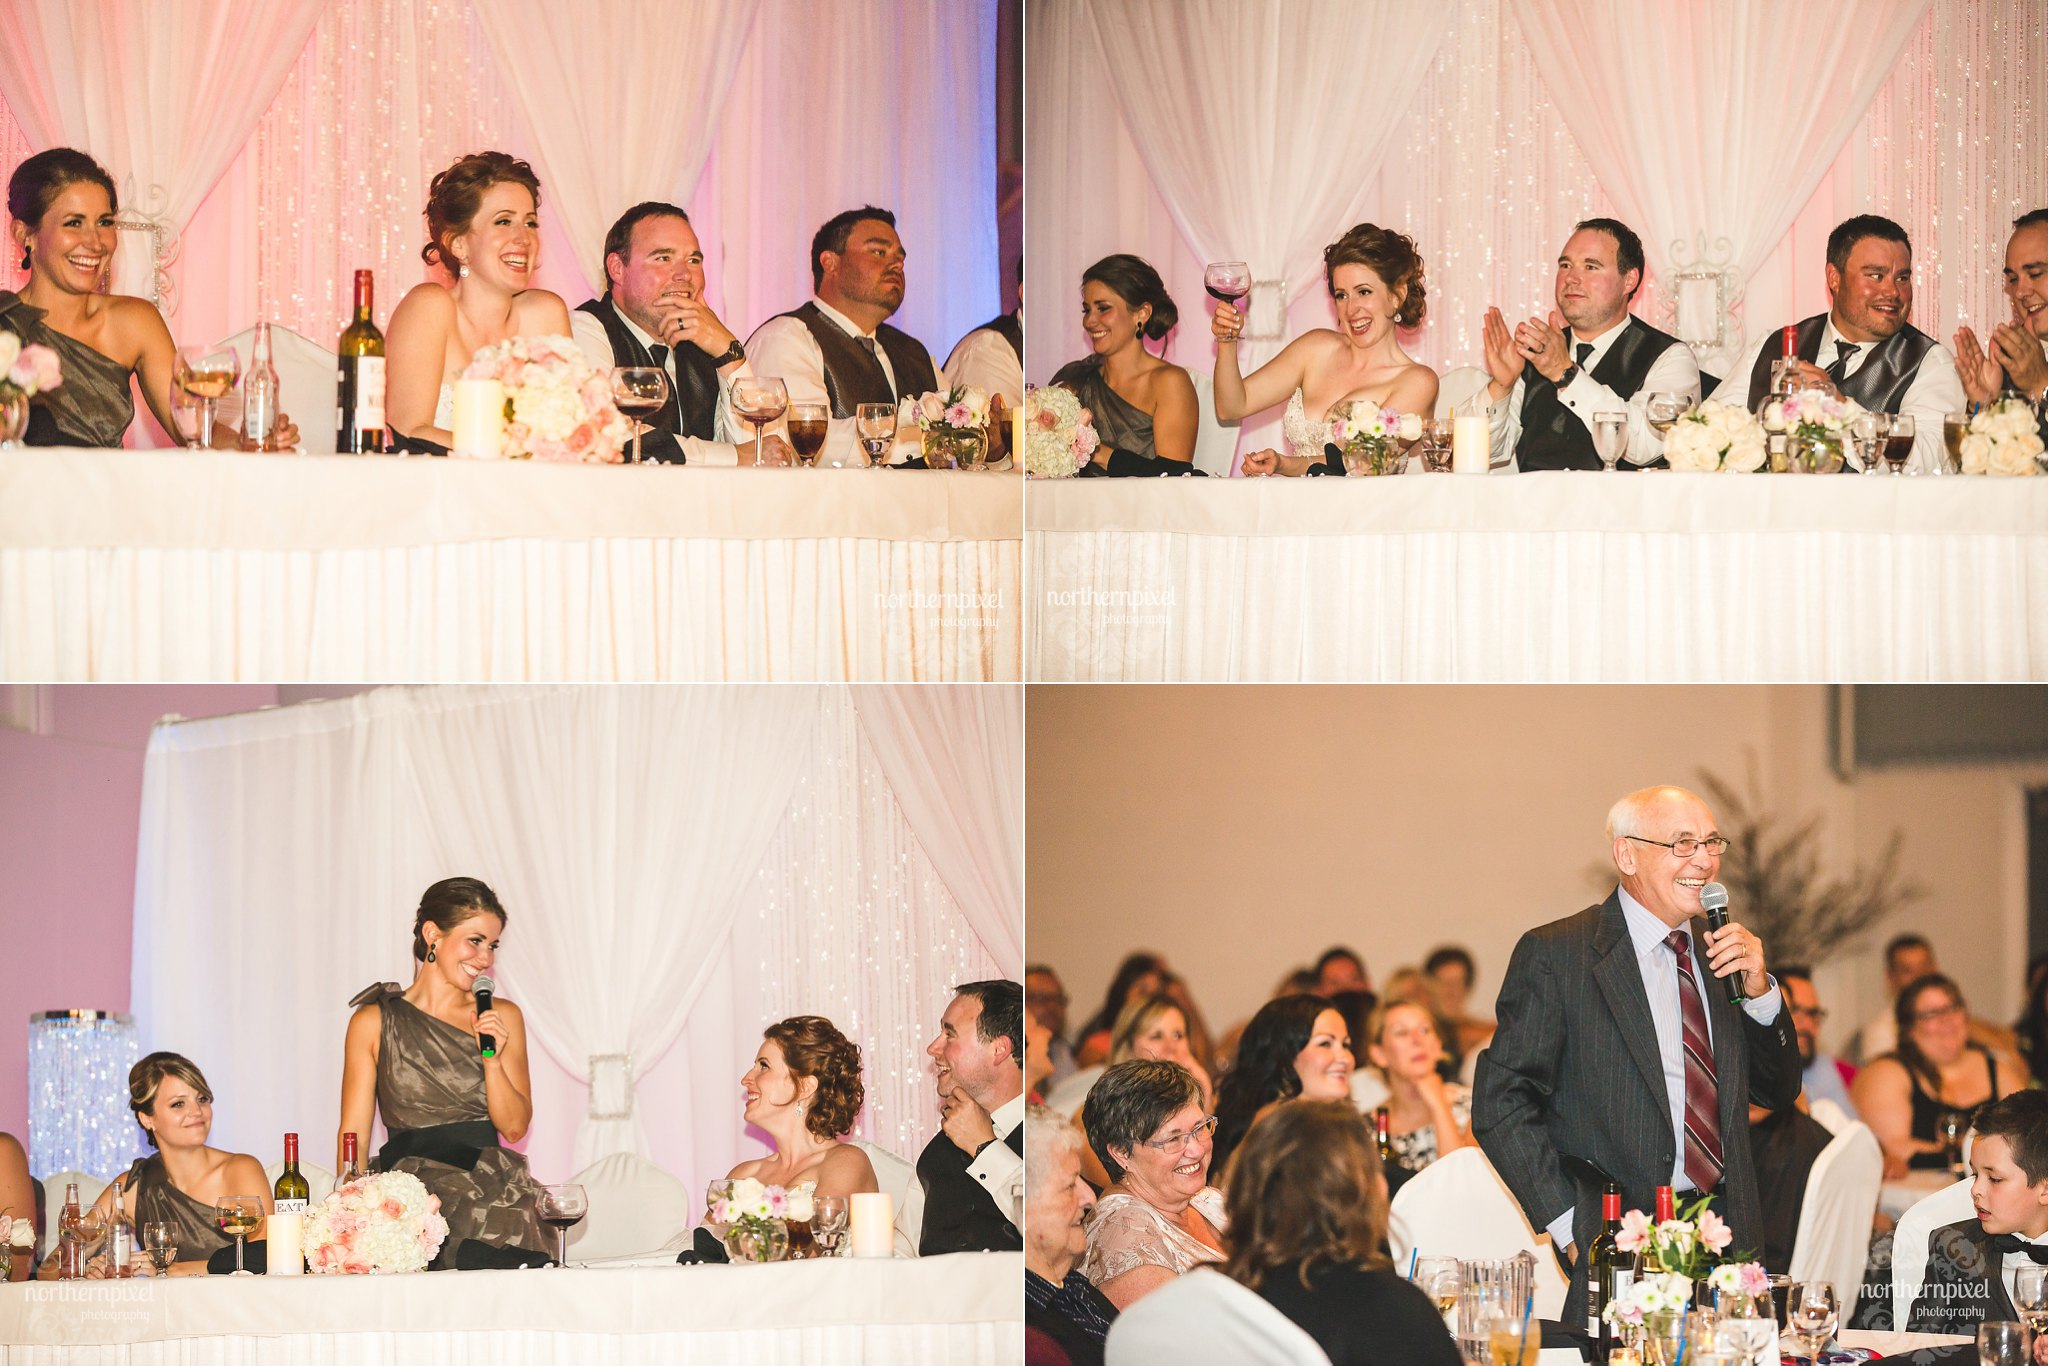 Kendra & Jarrett's Wedding Reception - Prince George BC